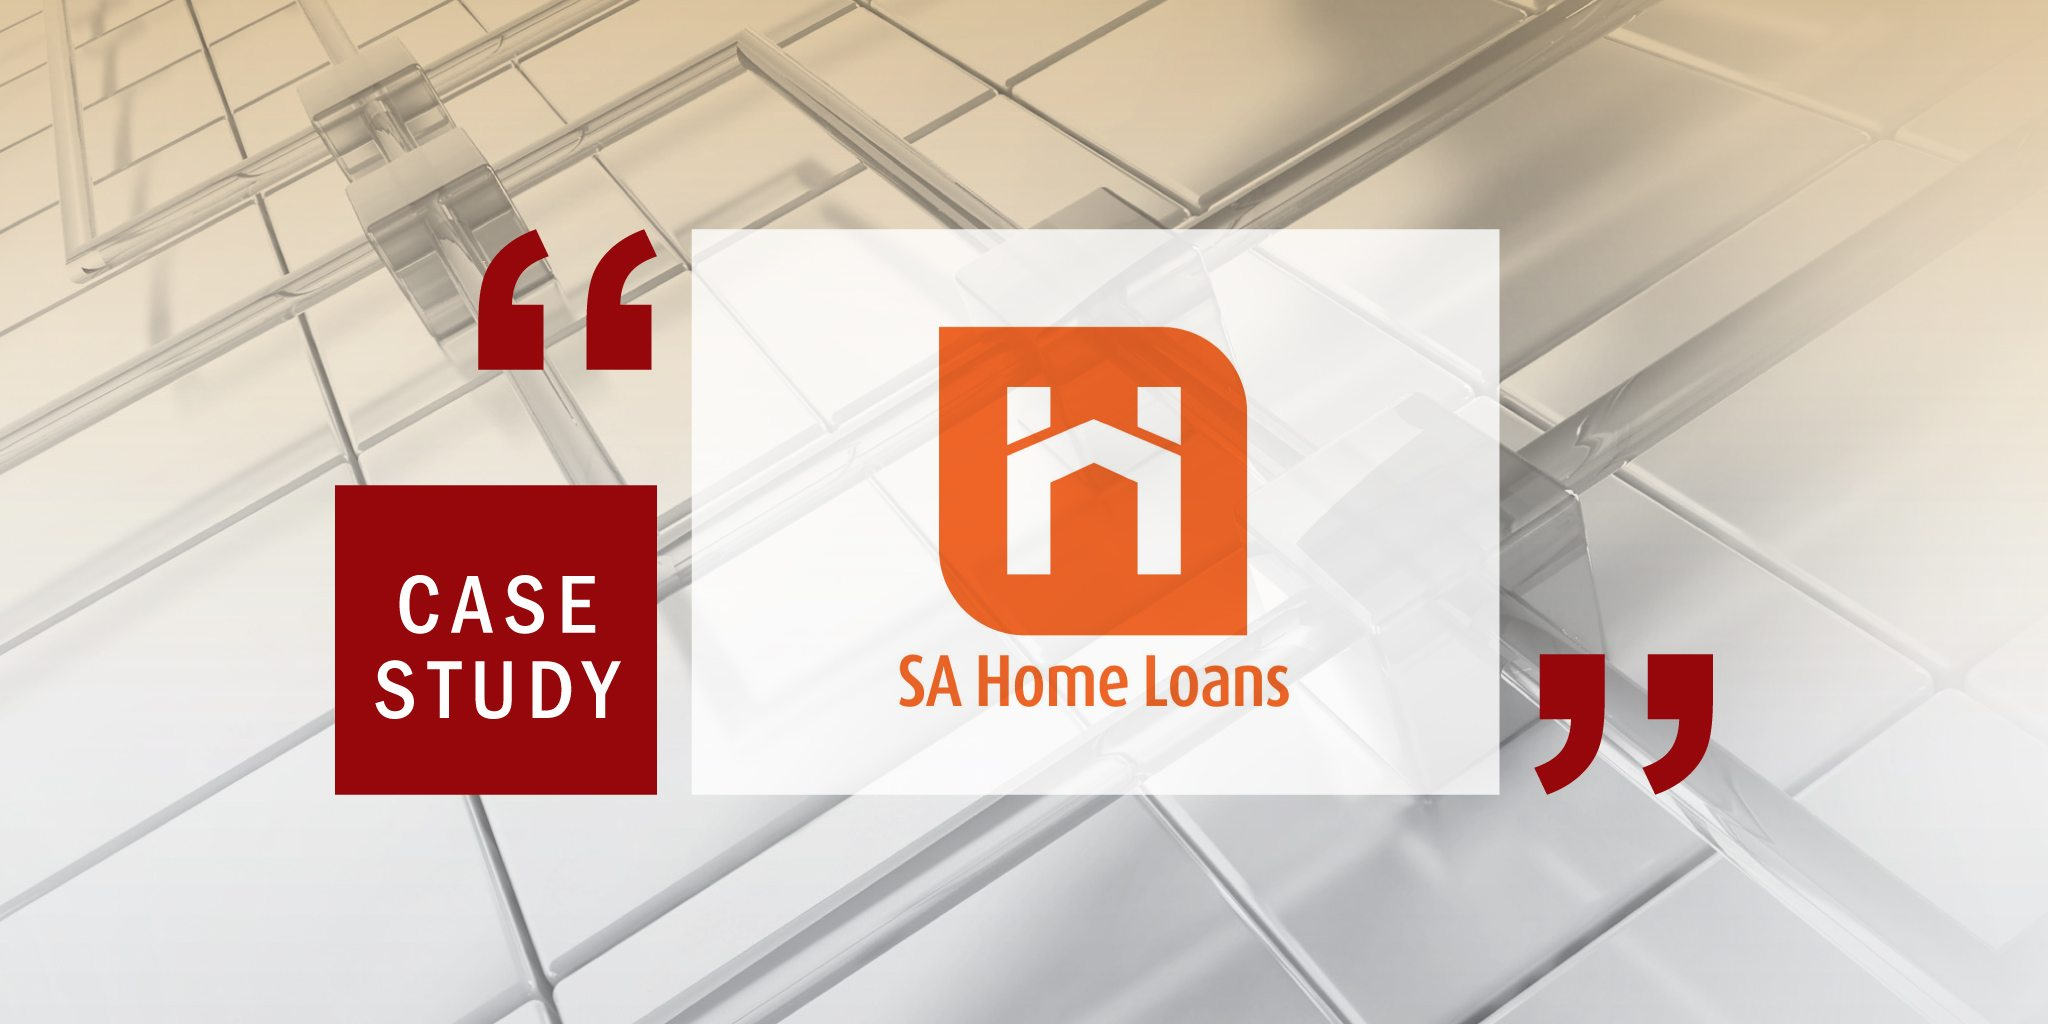 case study housing loan Discuss and gain an understanding of the 5 p's of credit analyze a recently originated loan for potential weaknesses / red flags review and re-evaluate the loan a year later.